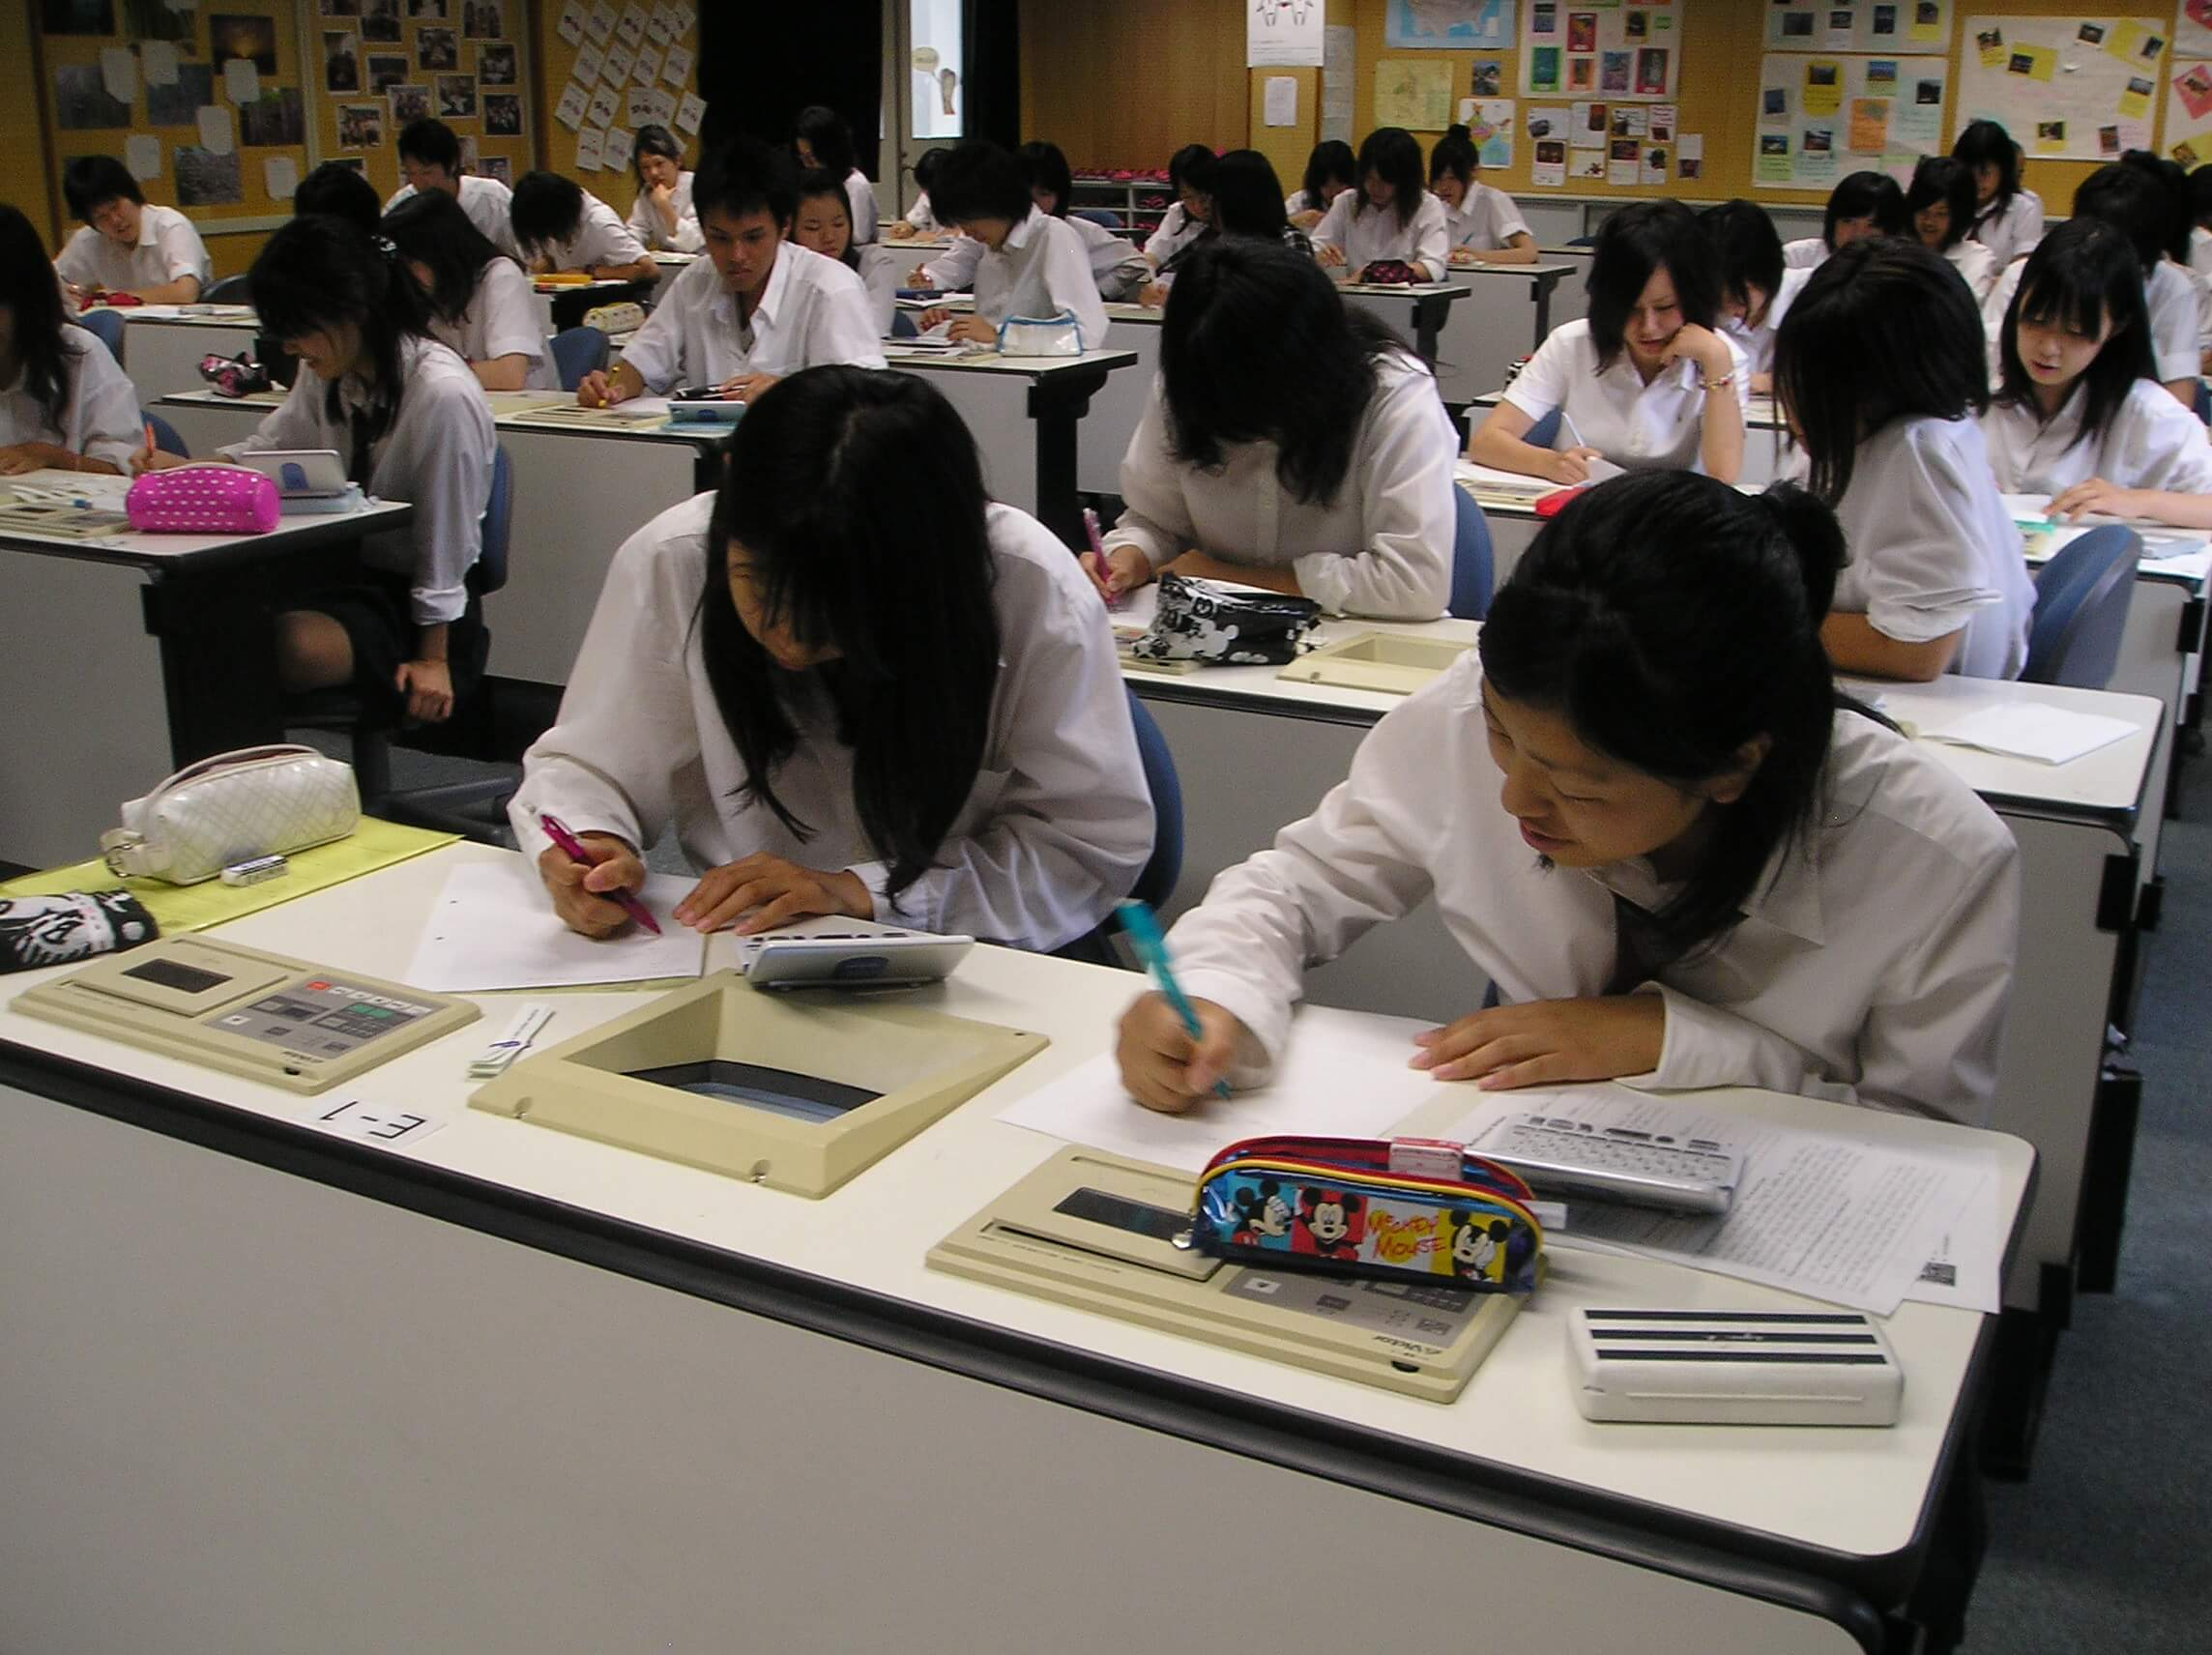 Schoolchildren at their desks